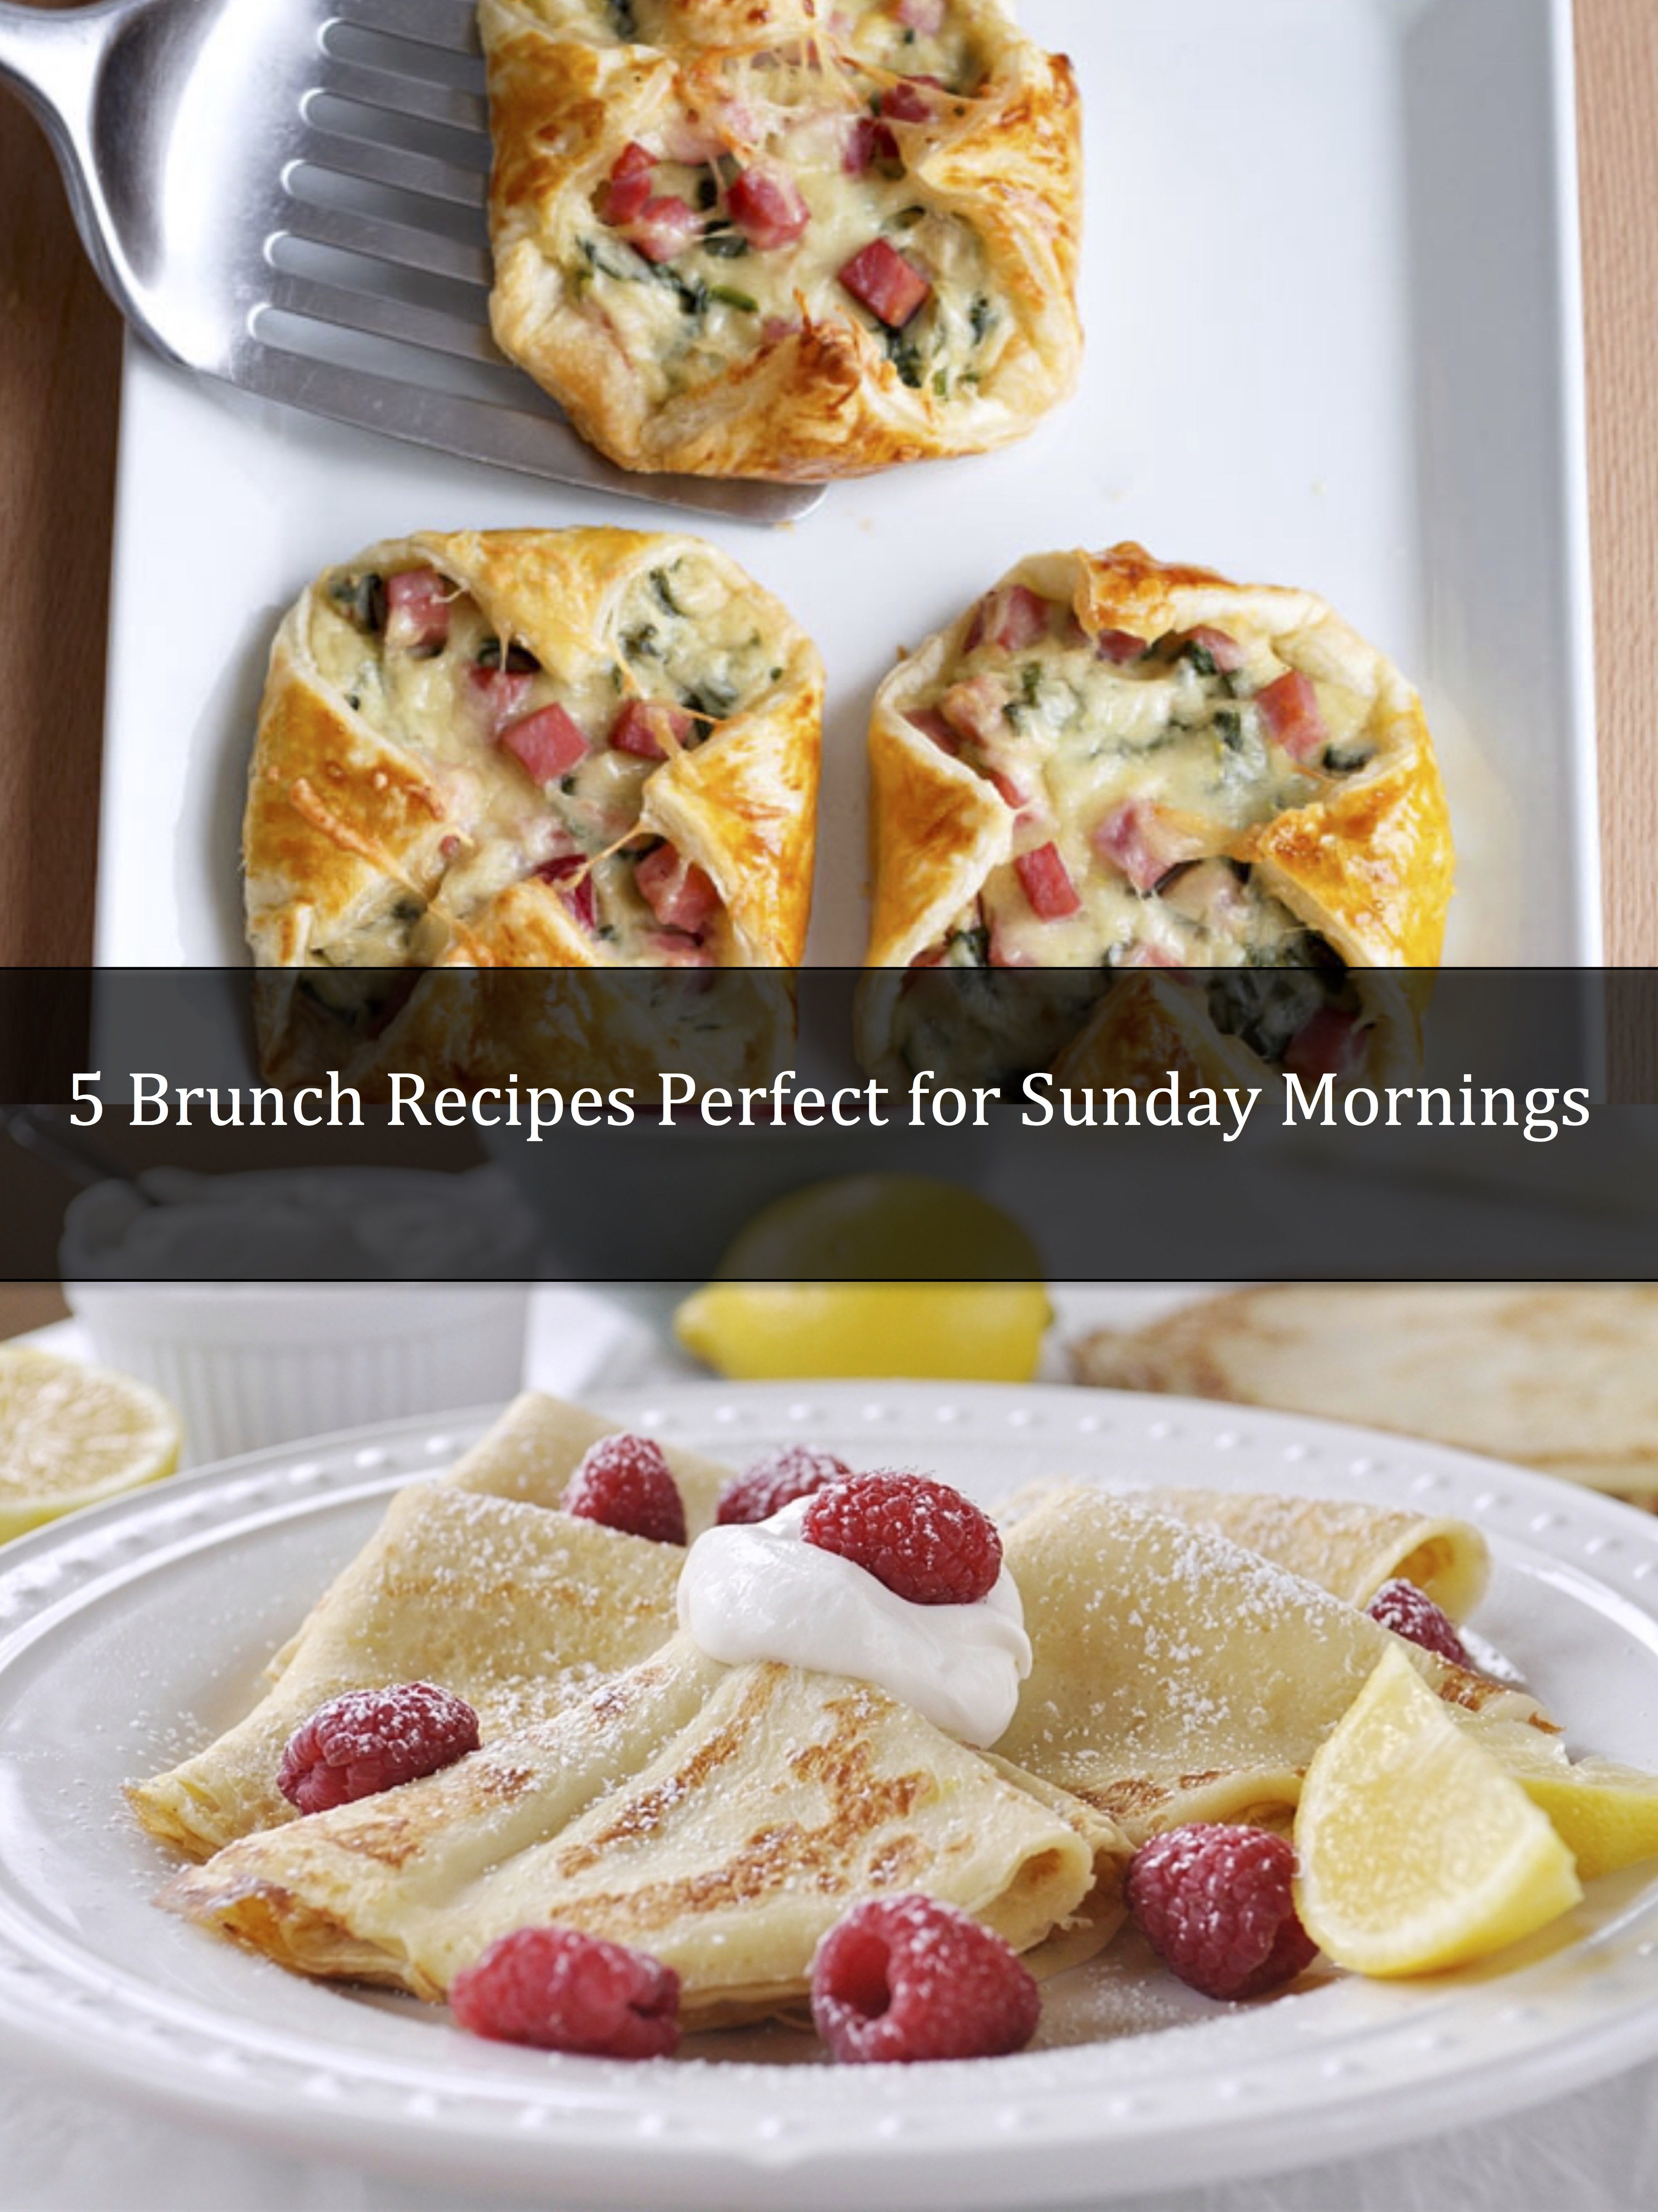 5 Brunch Recipes Perfect for Sunday Mornings